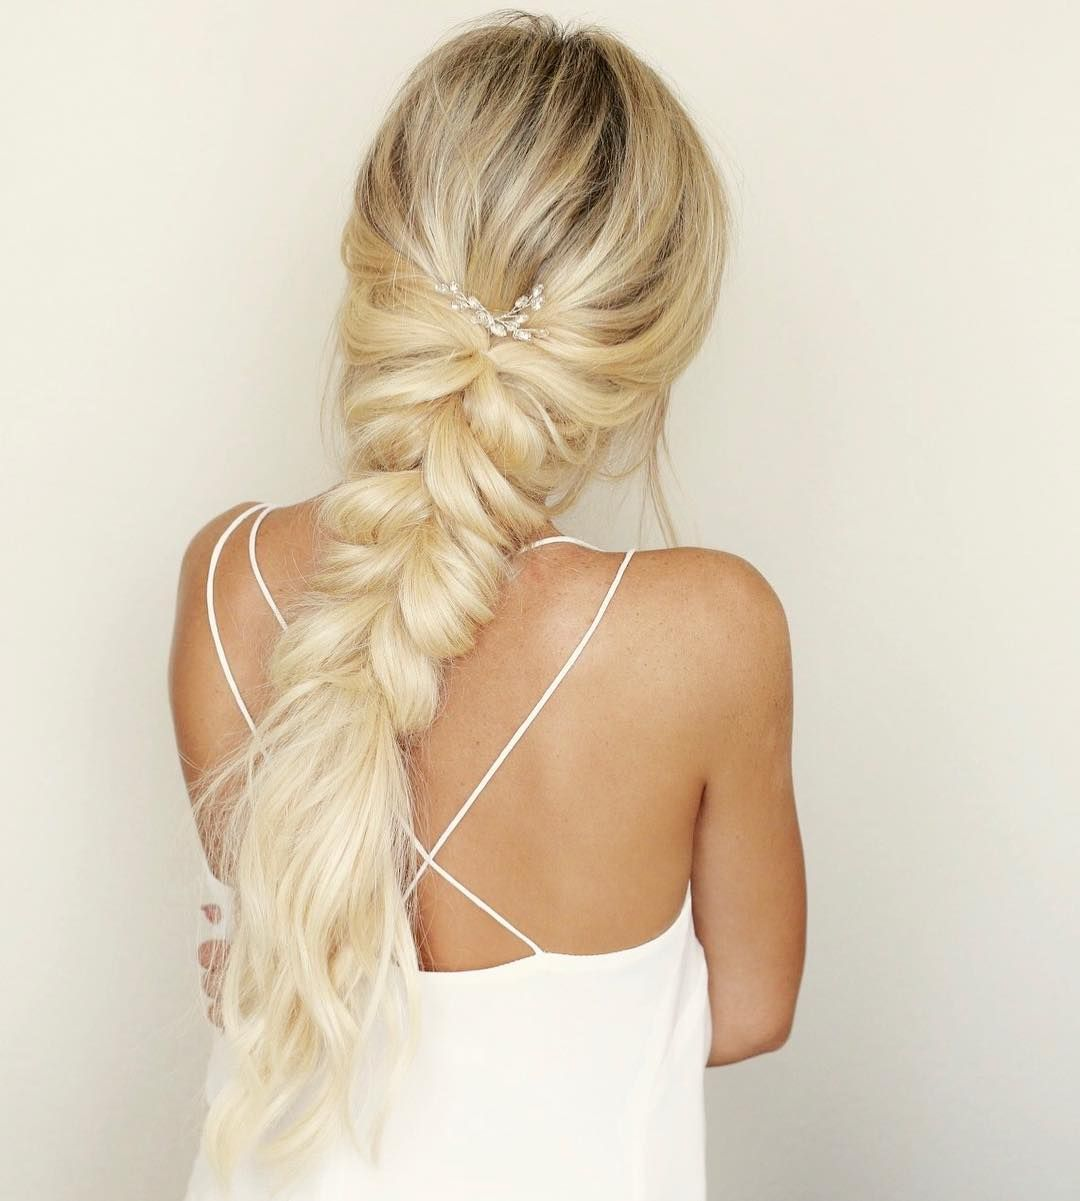 Hairinspo By Becky Gaode Paired With Emerson Cami By Jenny Yoo